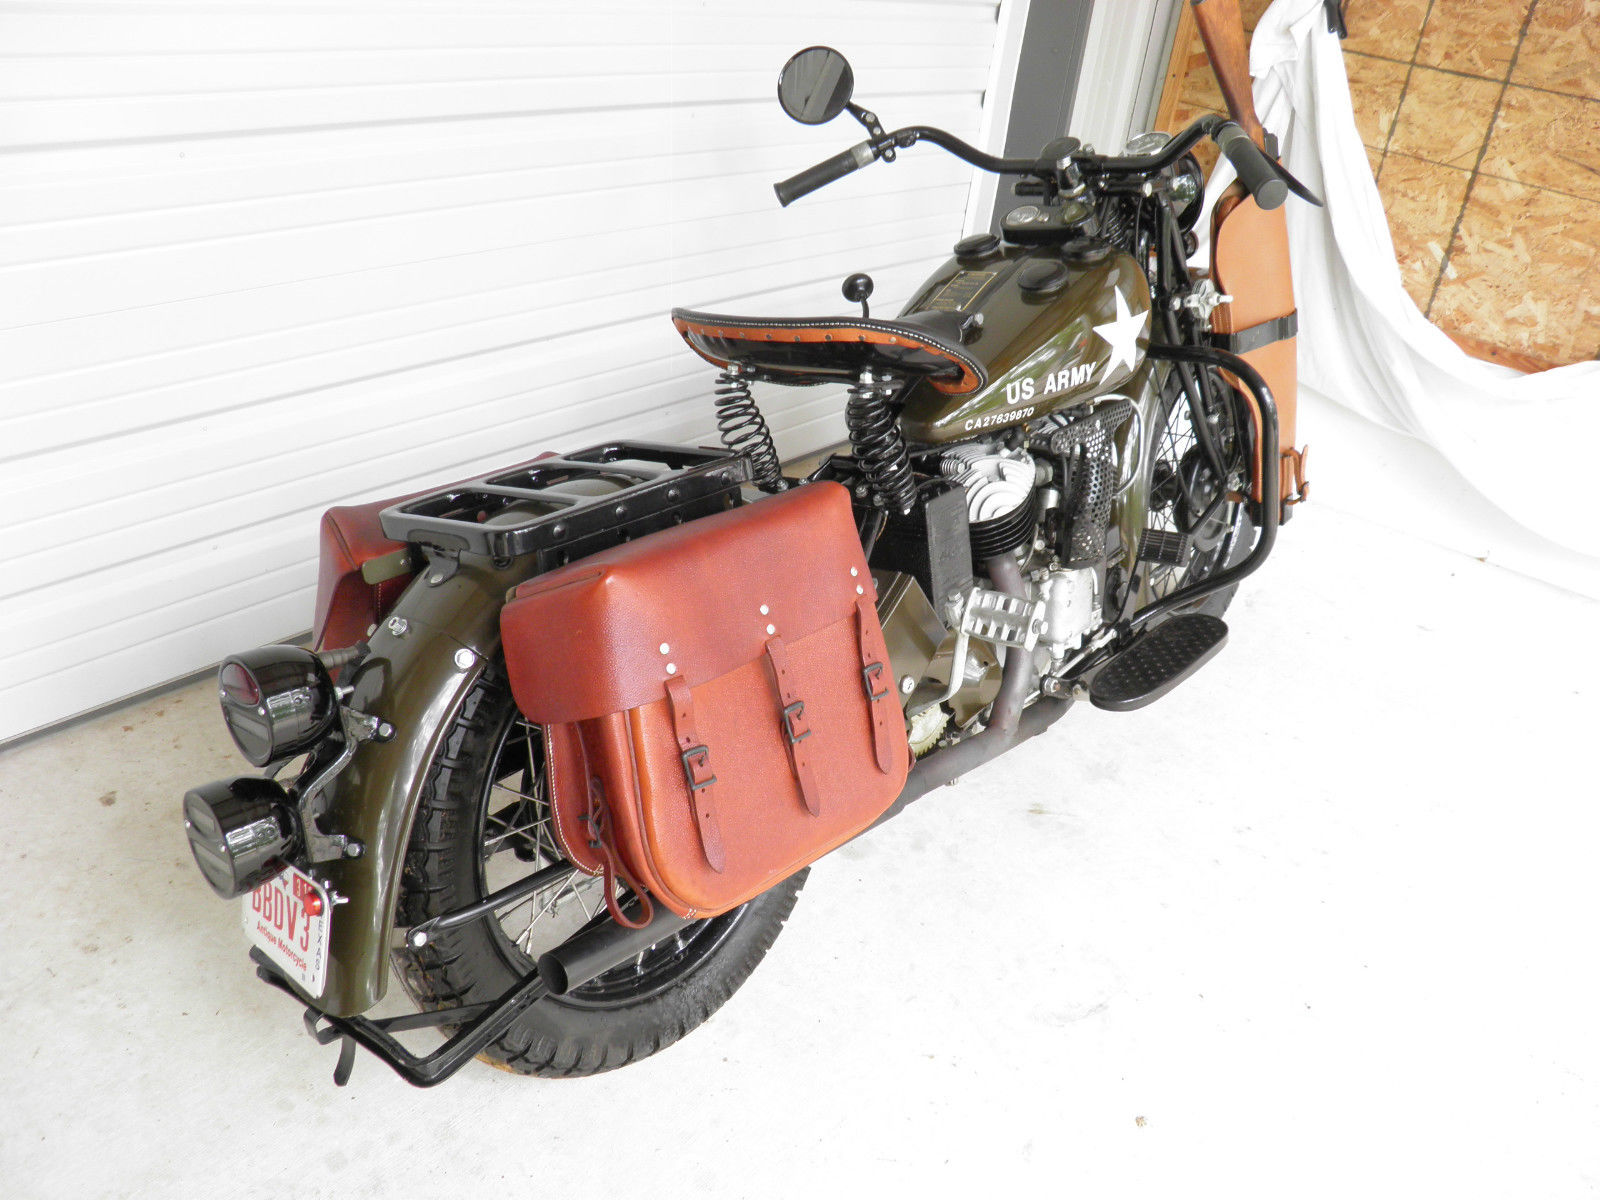 The eBay bike looks to be nicely restored. (Picture courtesy eBay).